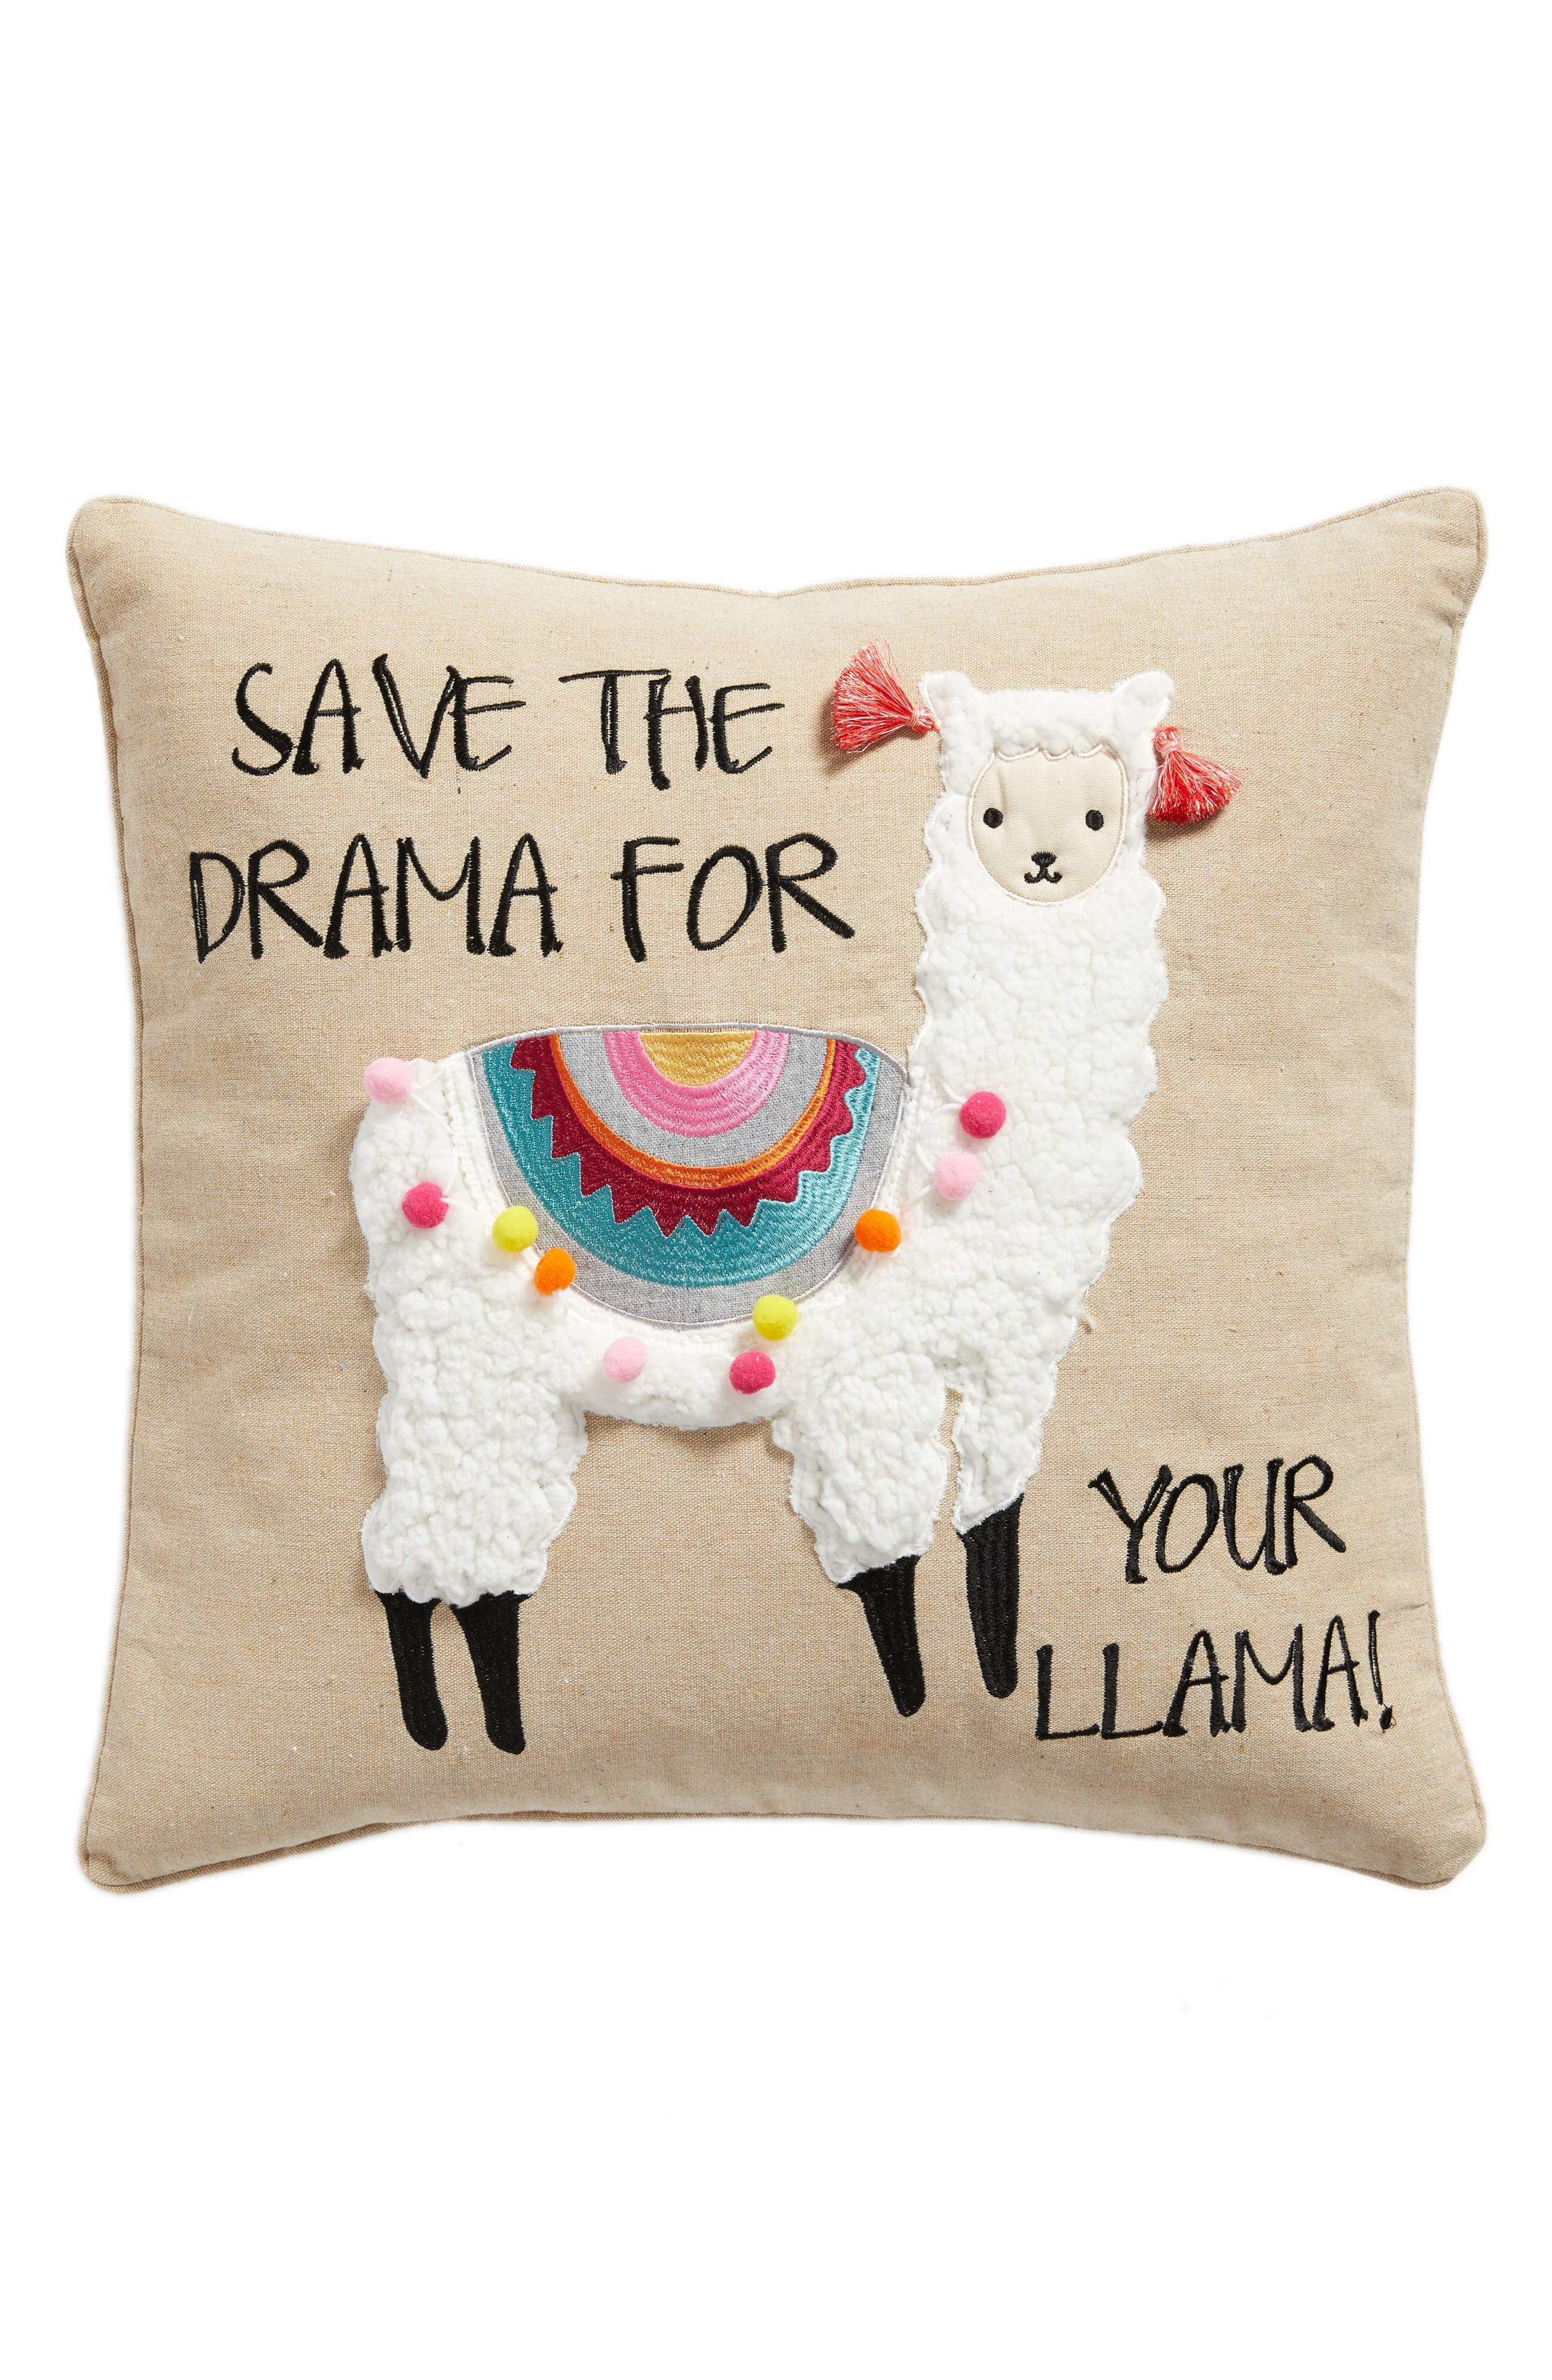 Save the Drama For Your Llama Pillow,                         Main,                         color, 250